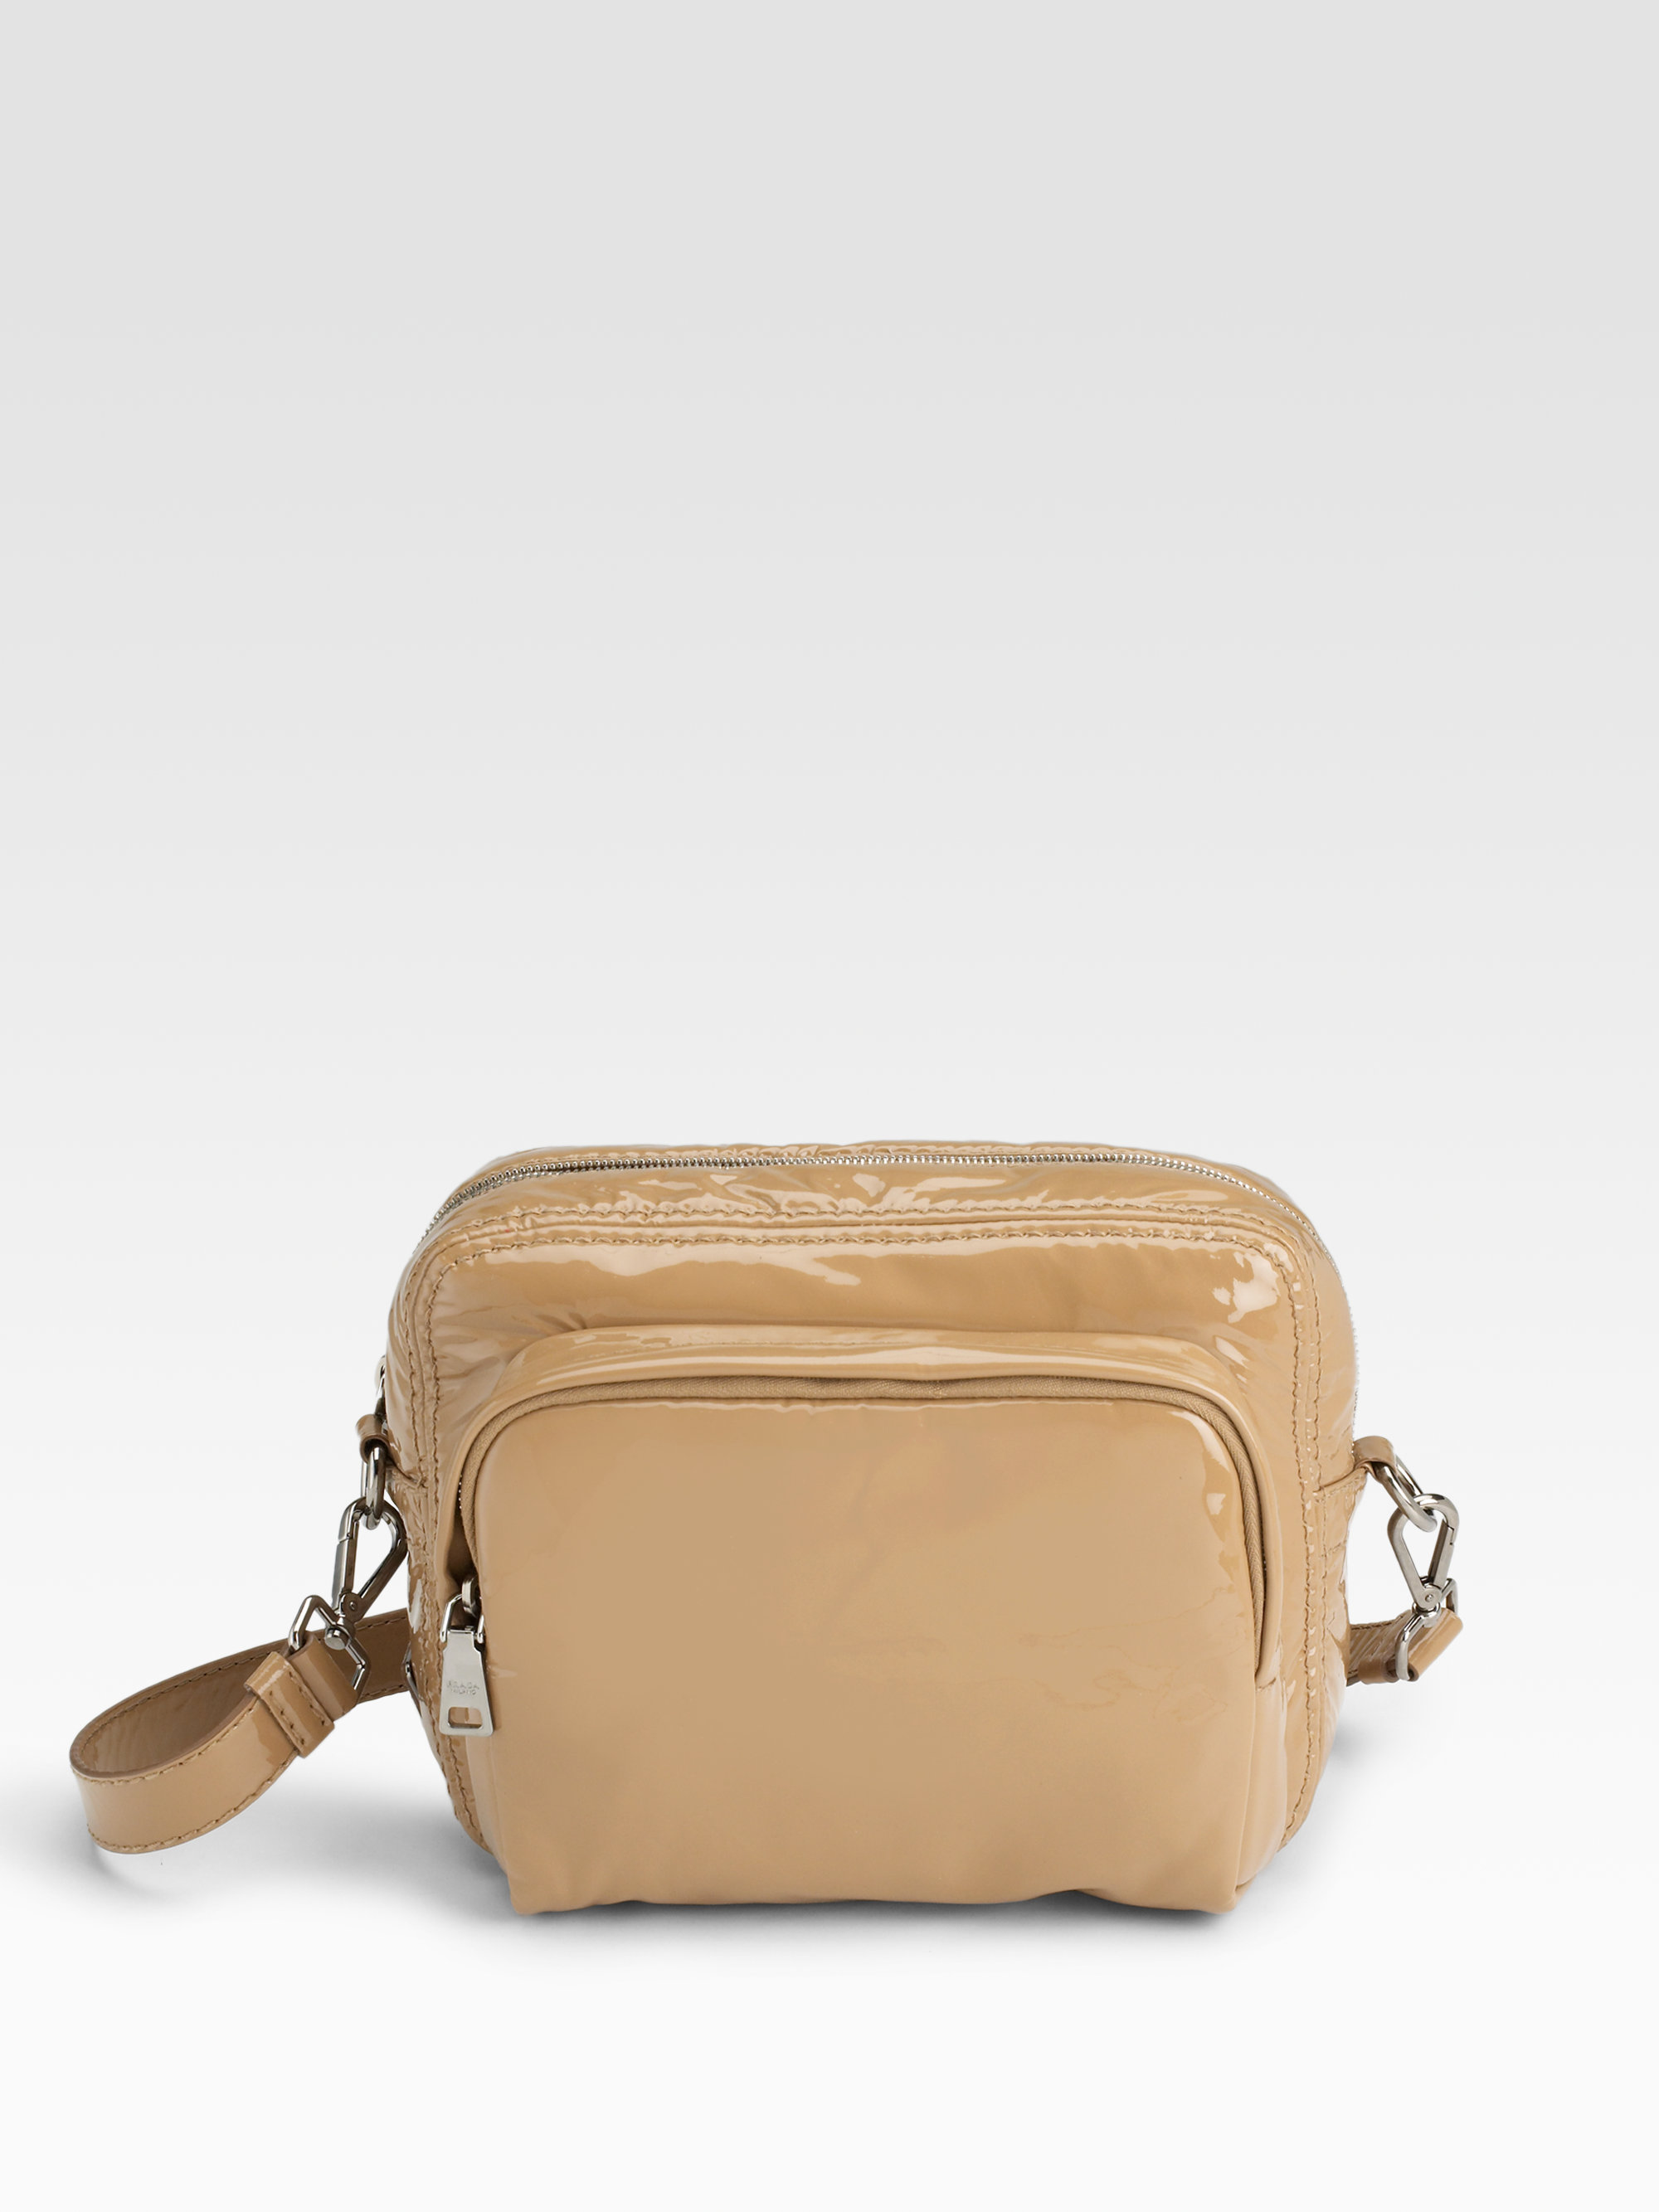 ddce0ba1aa98ae Prada Camera Bag Tan | Stanford Center for Opportunity Policy in ...